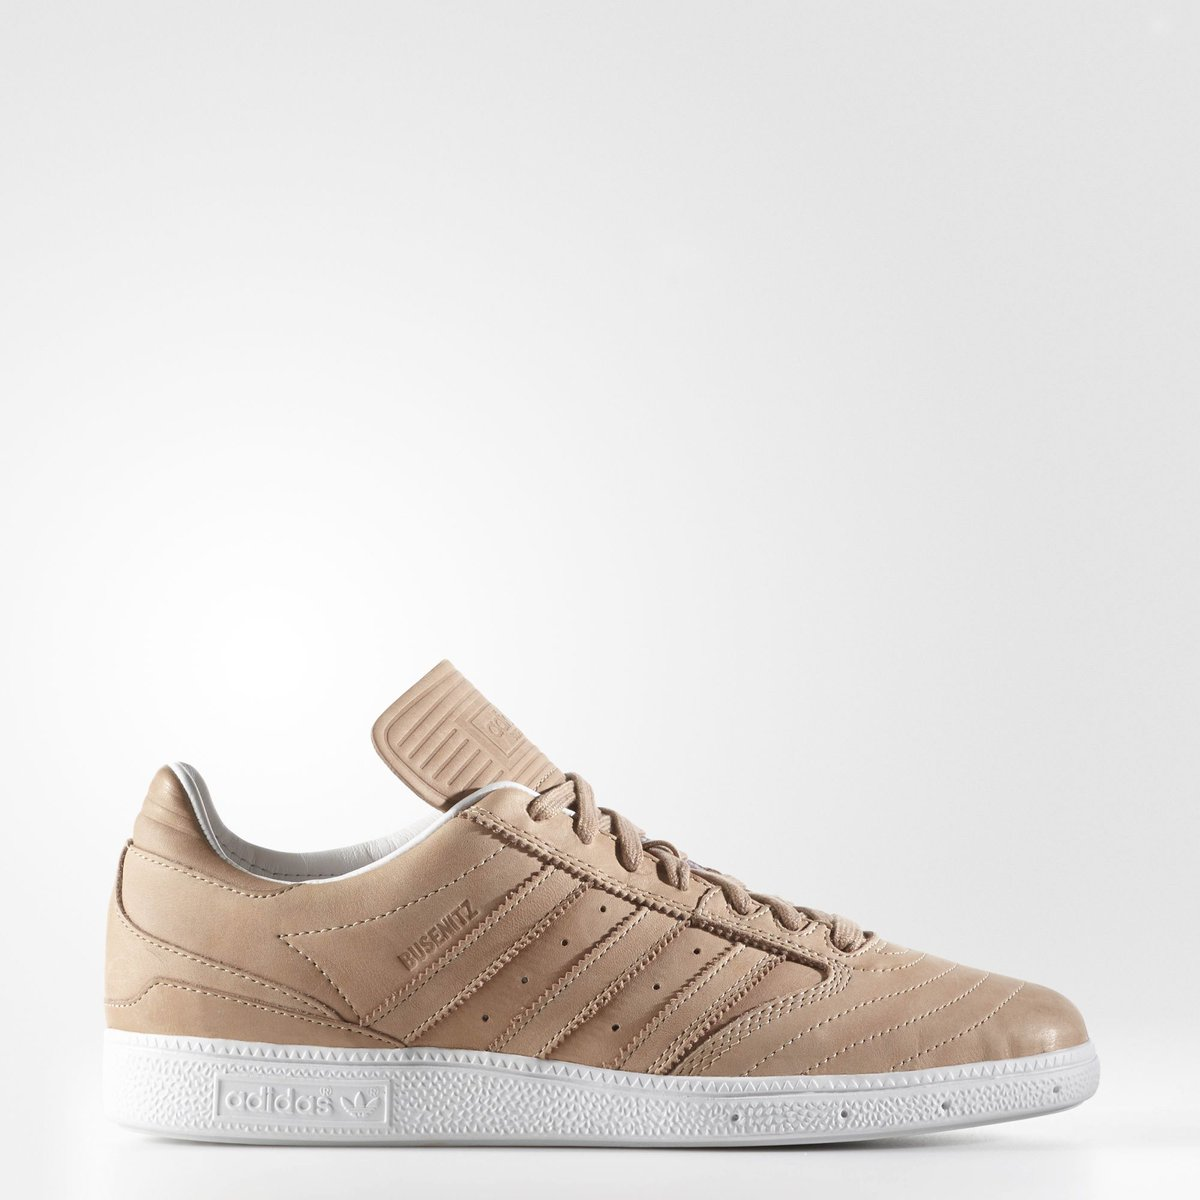 hot sale online b1ba0 07754 Now available on adidas US. adidas Busenitz Veg Tan Leather. —  httpbit.ly2iUgxaB pic.twitter.comWbNuvKoOAv